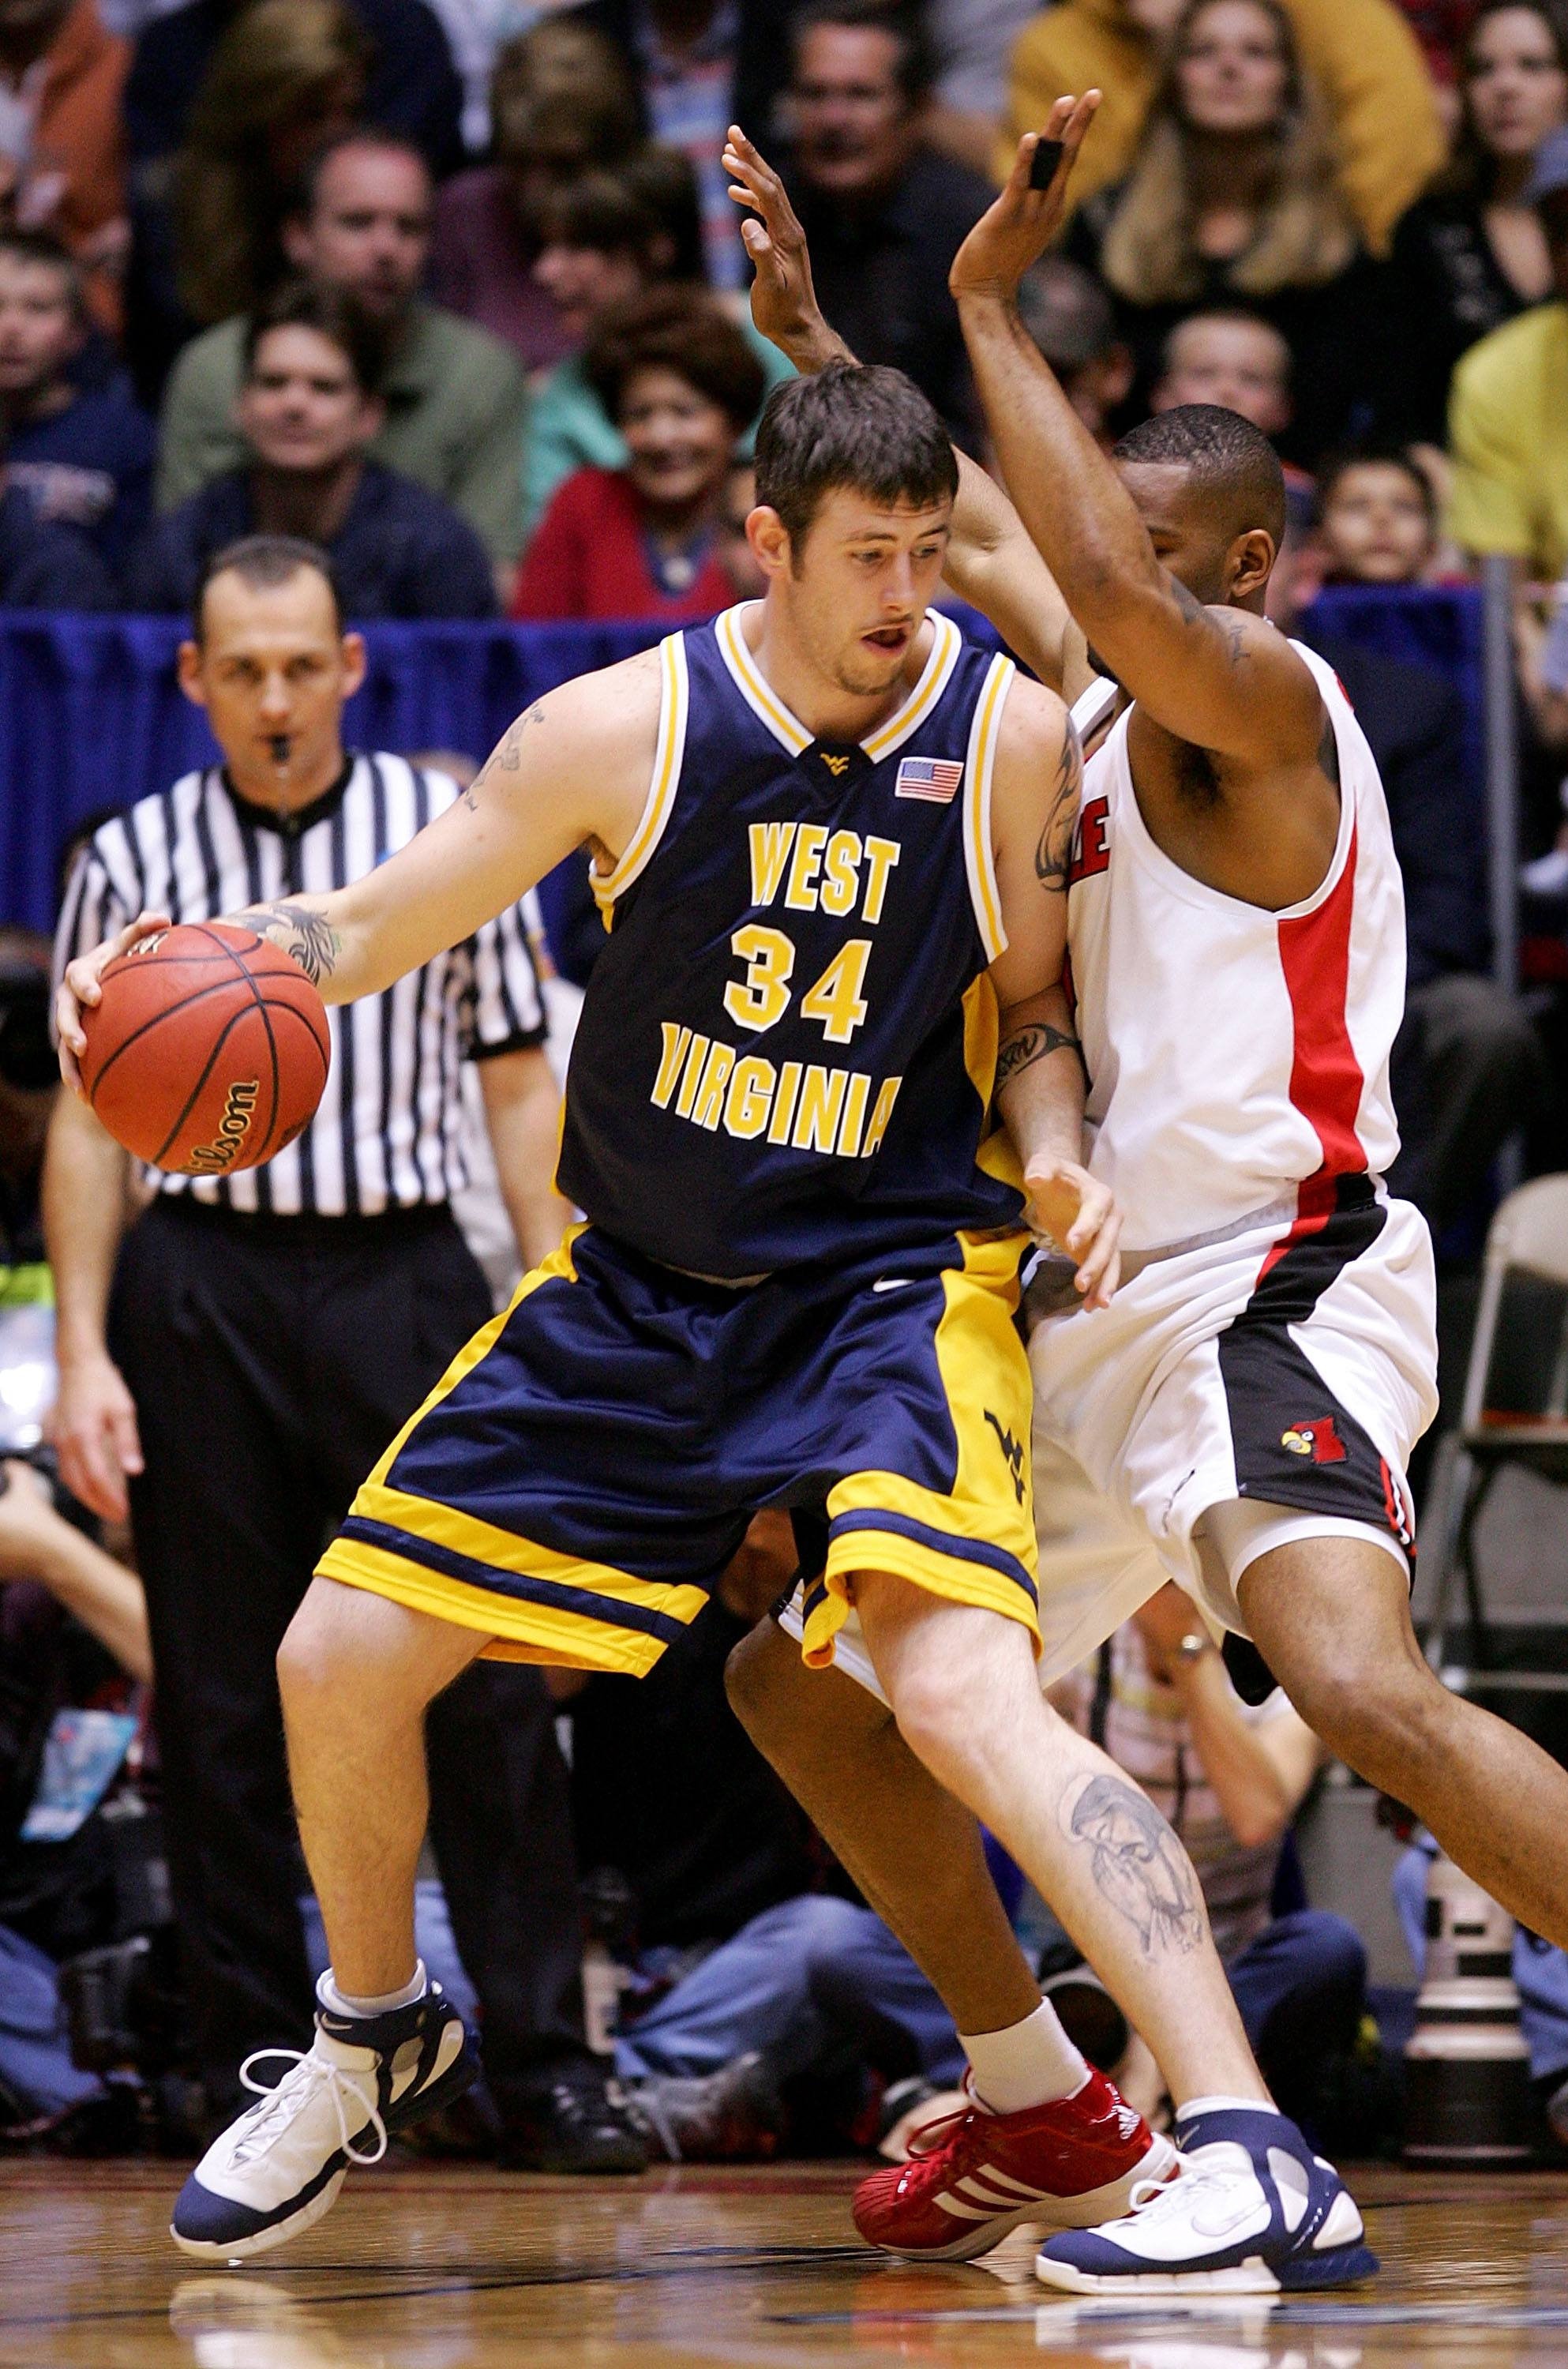 Kevin Pittsnogle #34 of the West Virginia Mountaineers goes up against Ellis Myles #2 of the Louisville Cardinals